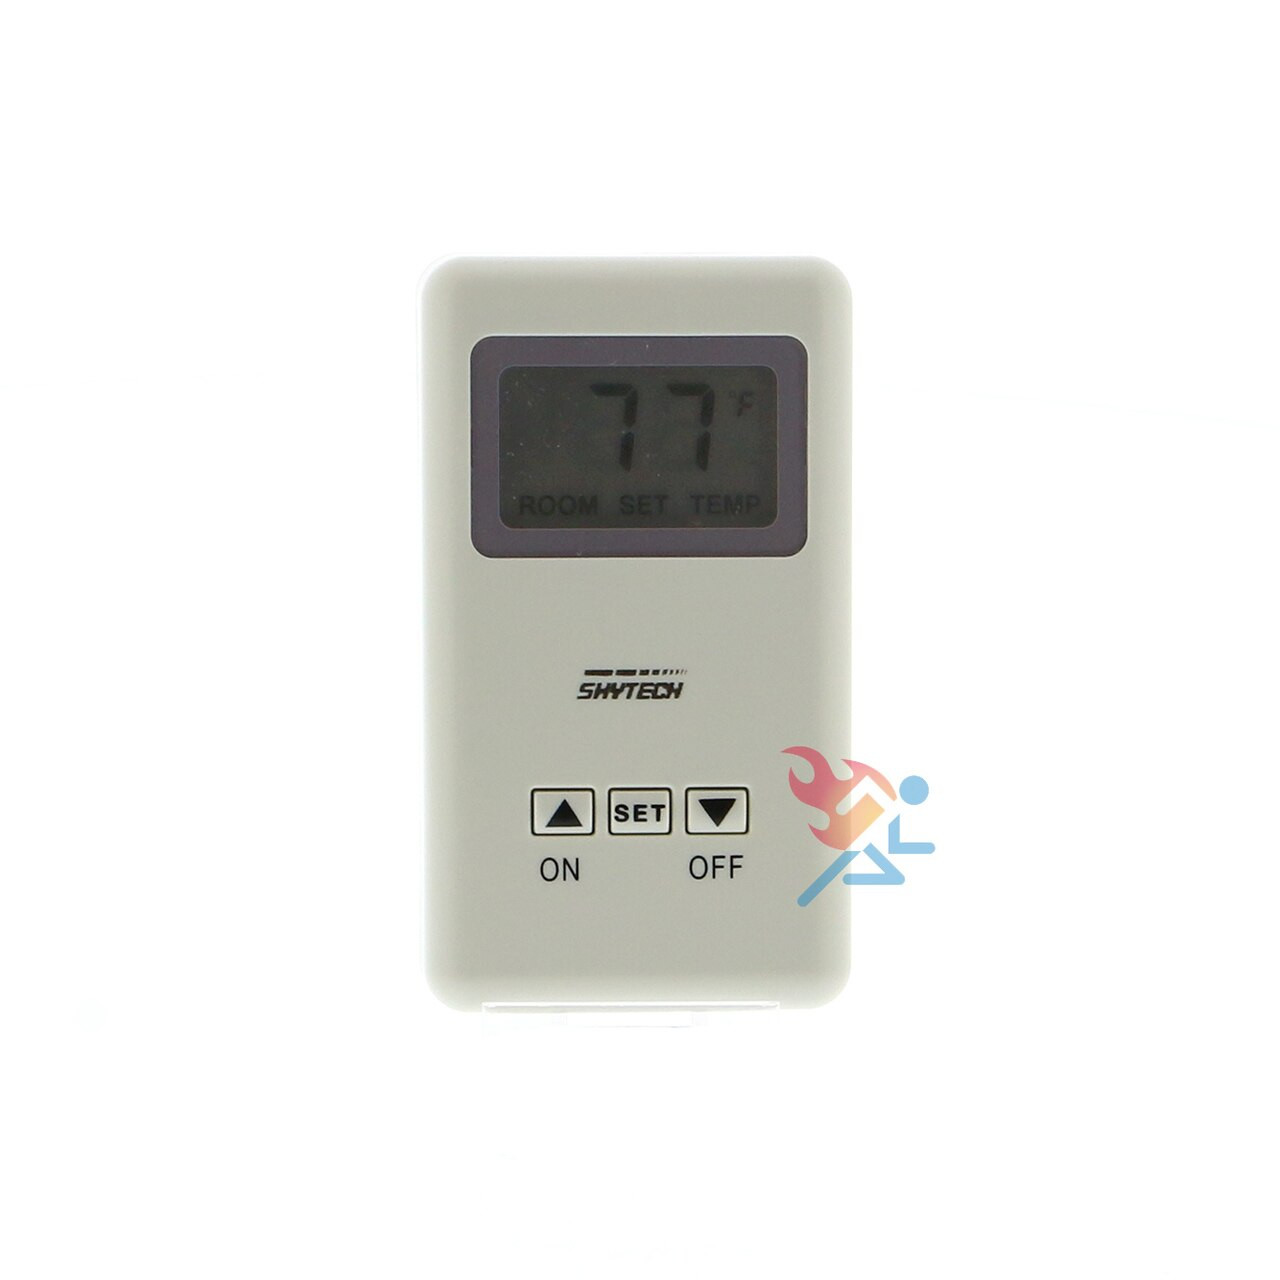 SkyTech TS-R-2A Fireplace Remote and Thermostat